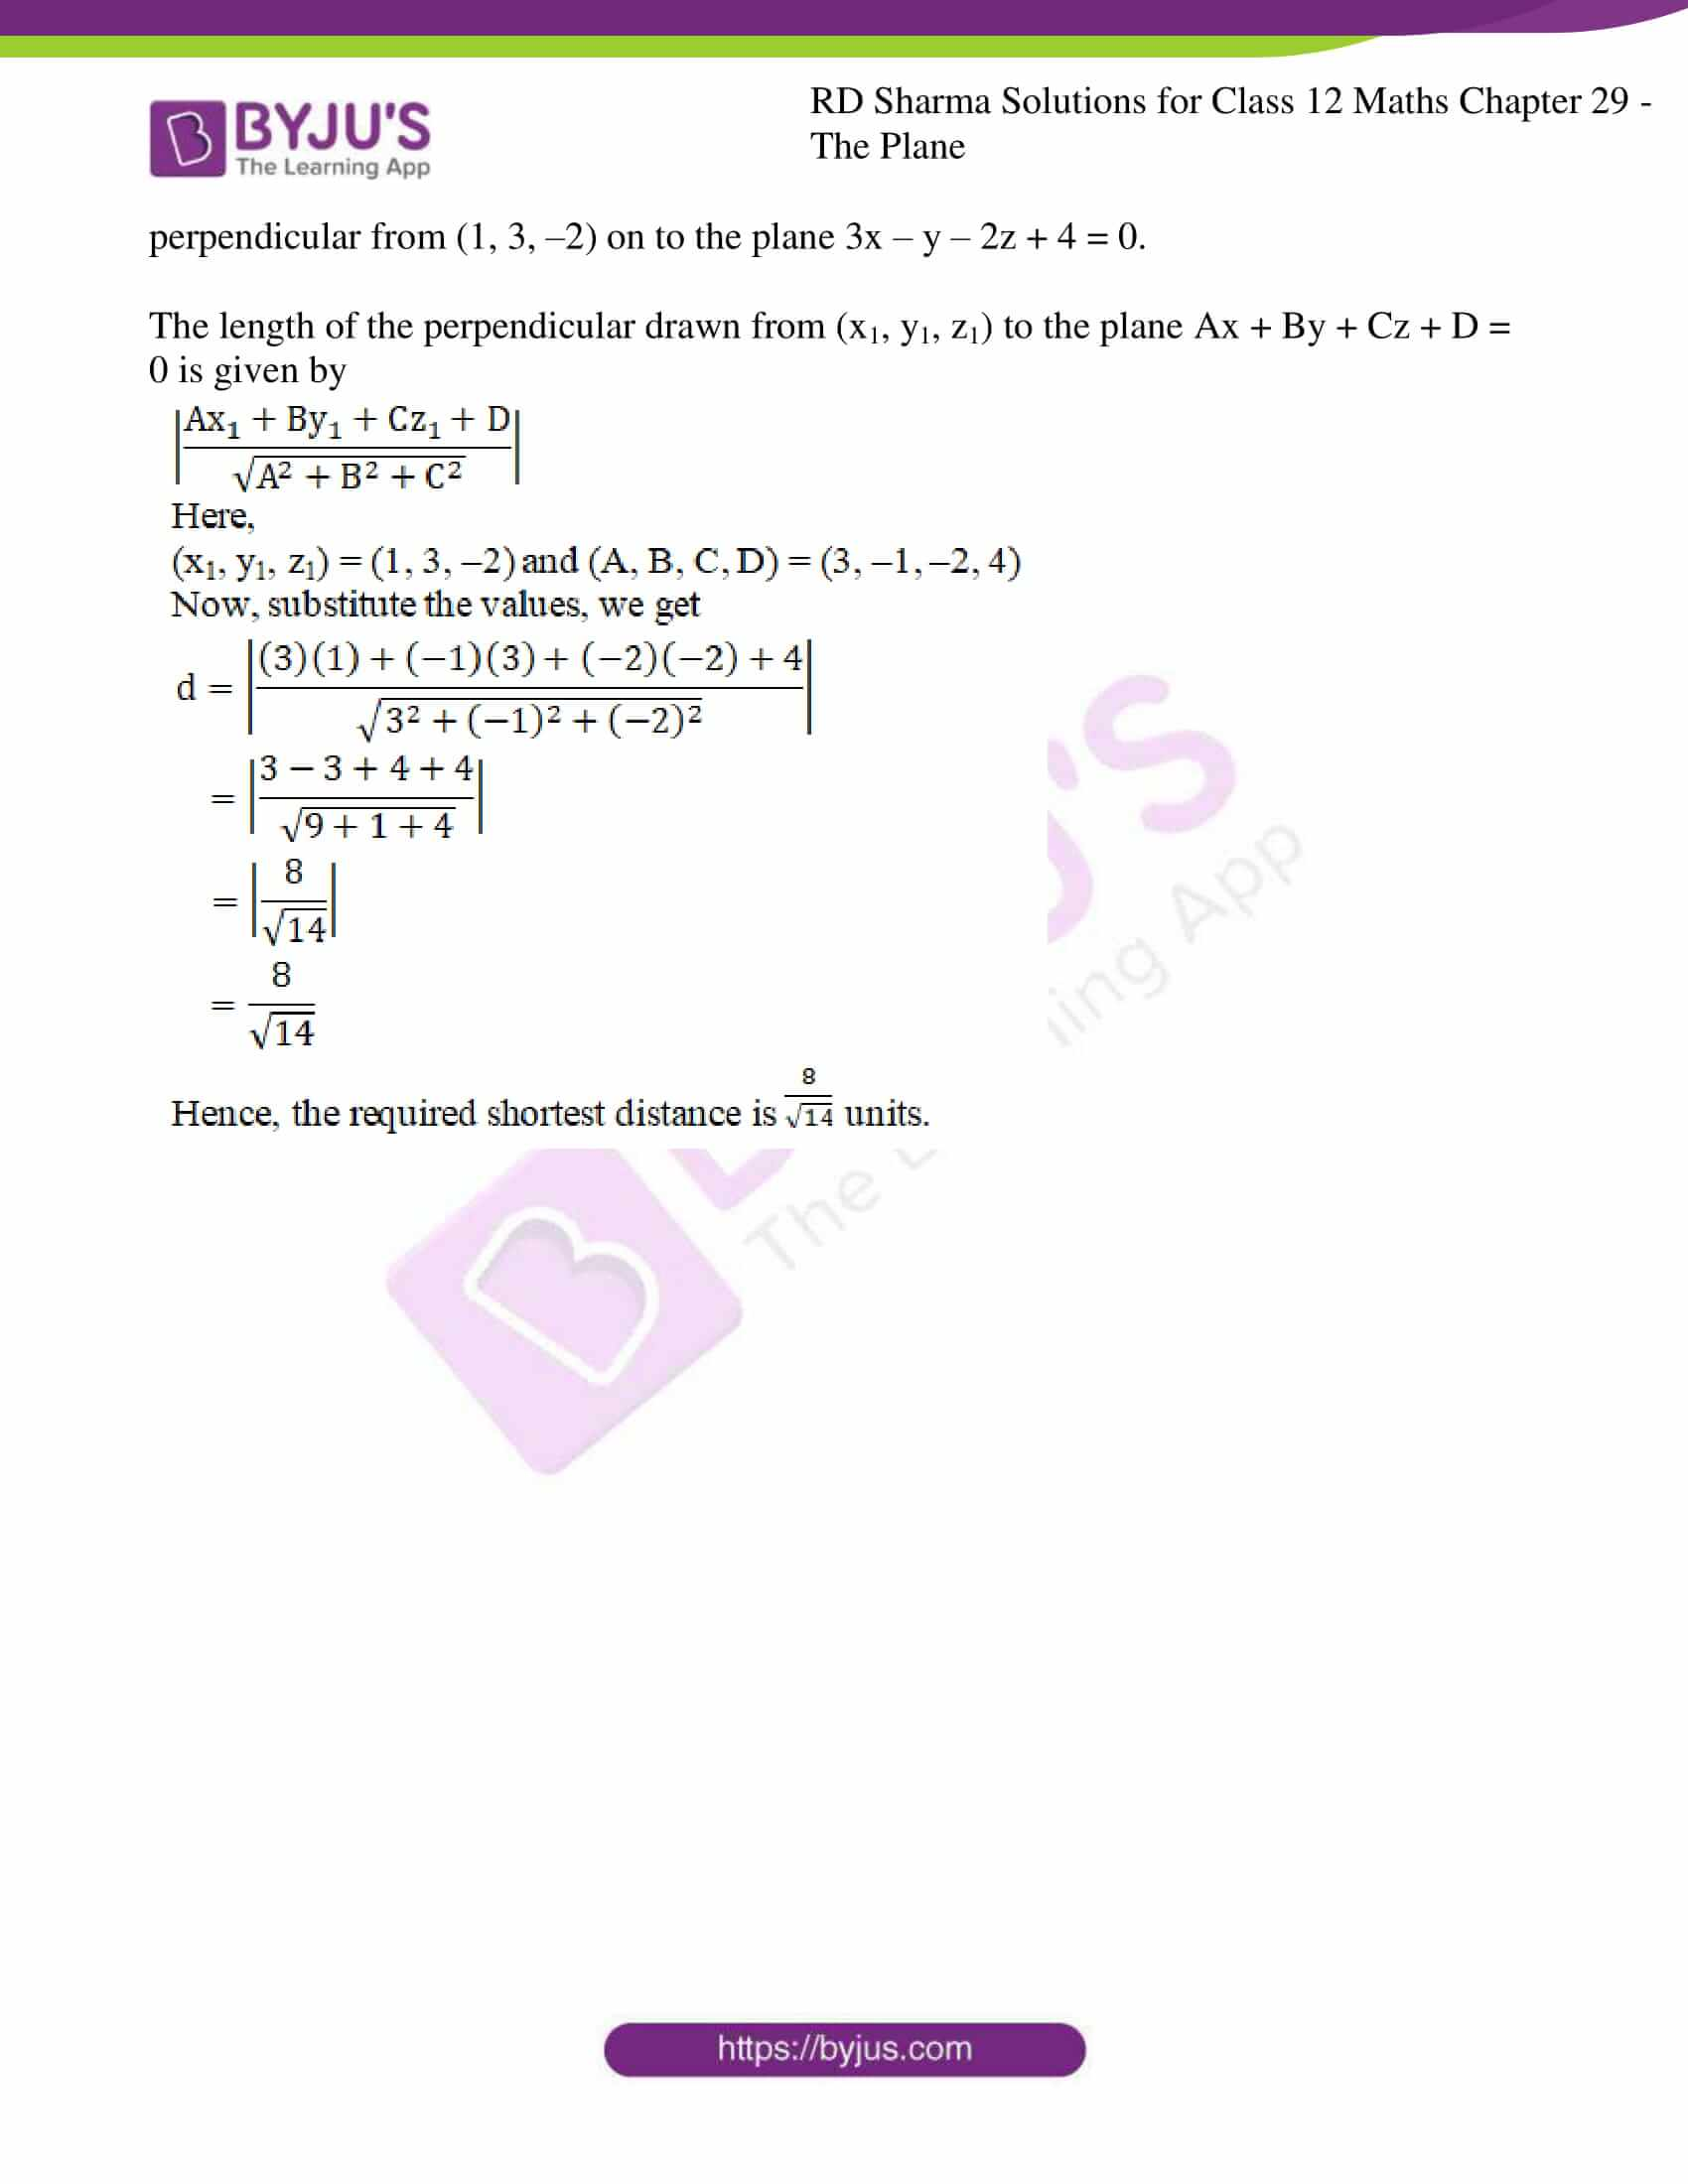 rd sharma solutions for class 12 maths chapter 29 ex 14 5